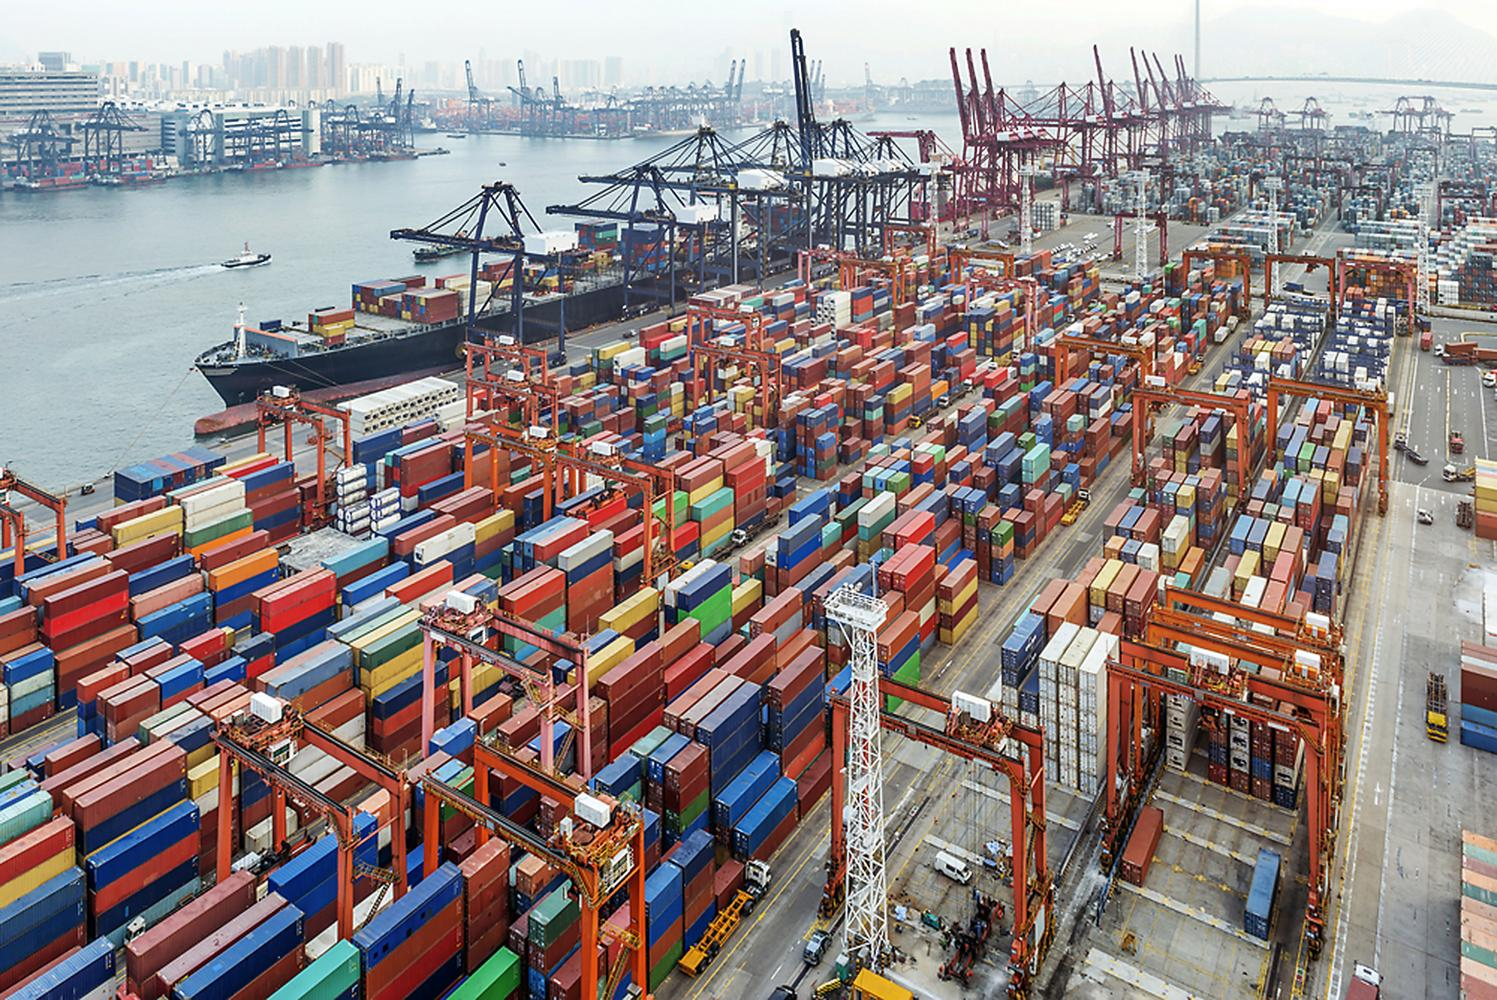 Exporters lost about B200bn worth of income in the first five months of 2019, says the Thai National Shippers' Council.